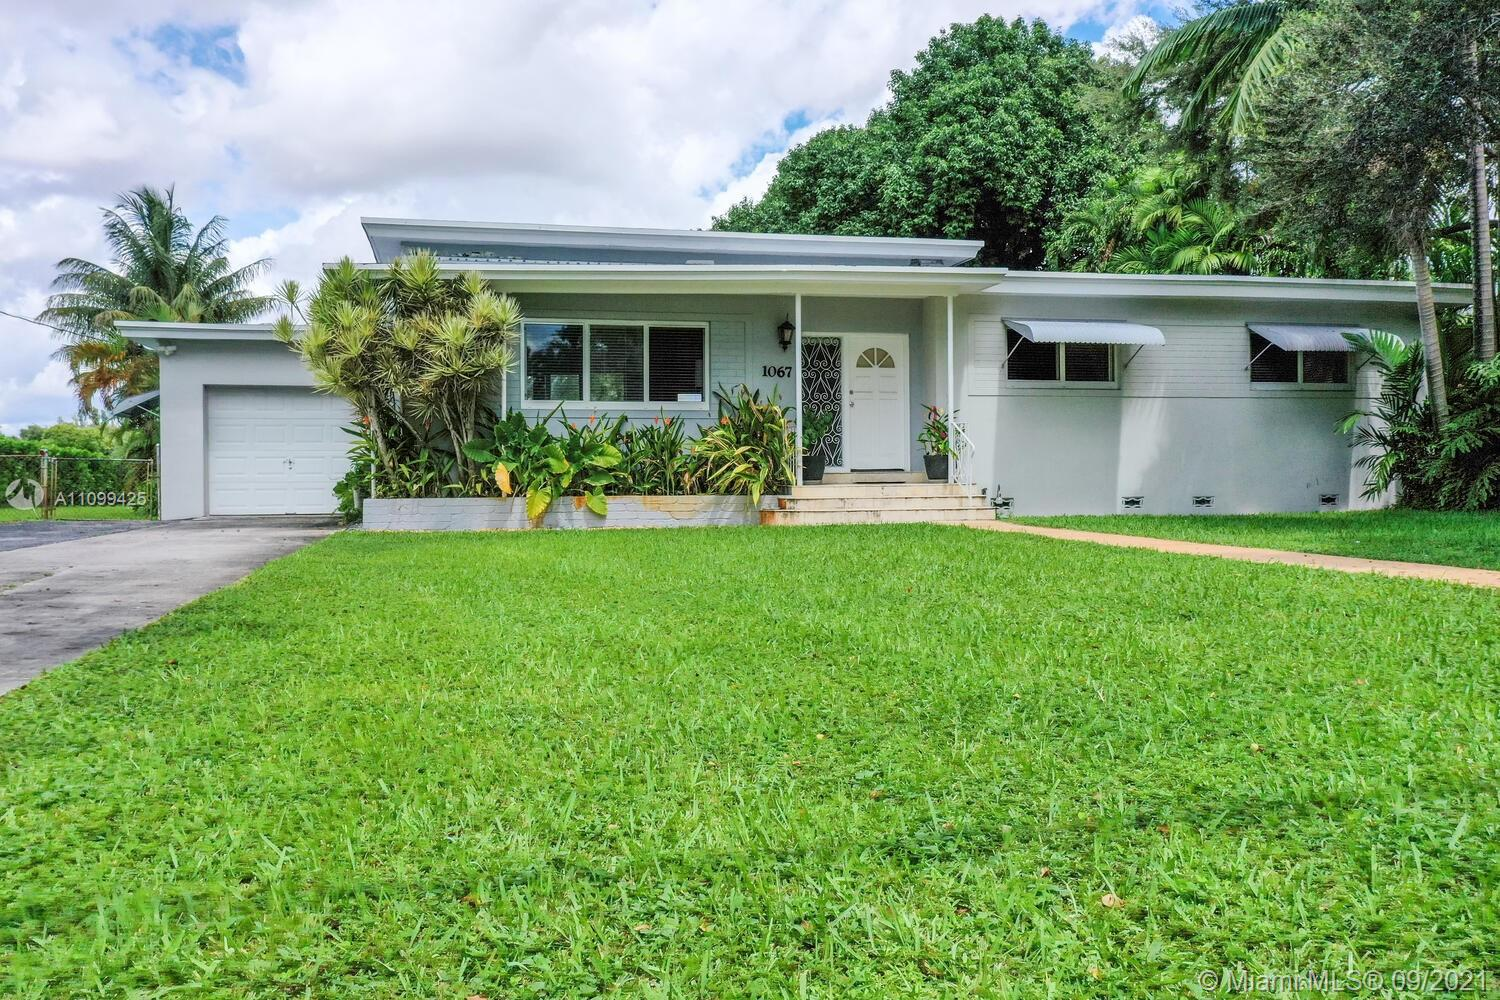 Single Family Home,For Sale,1067 Hunting Lodge Dr, Miami Springs, Florida 33166,Brickell,realty,broker,condos near me